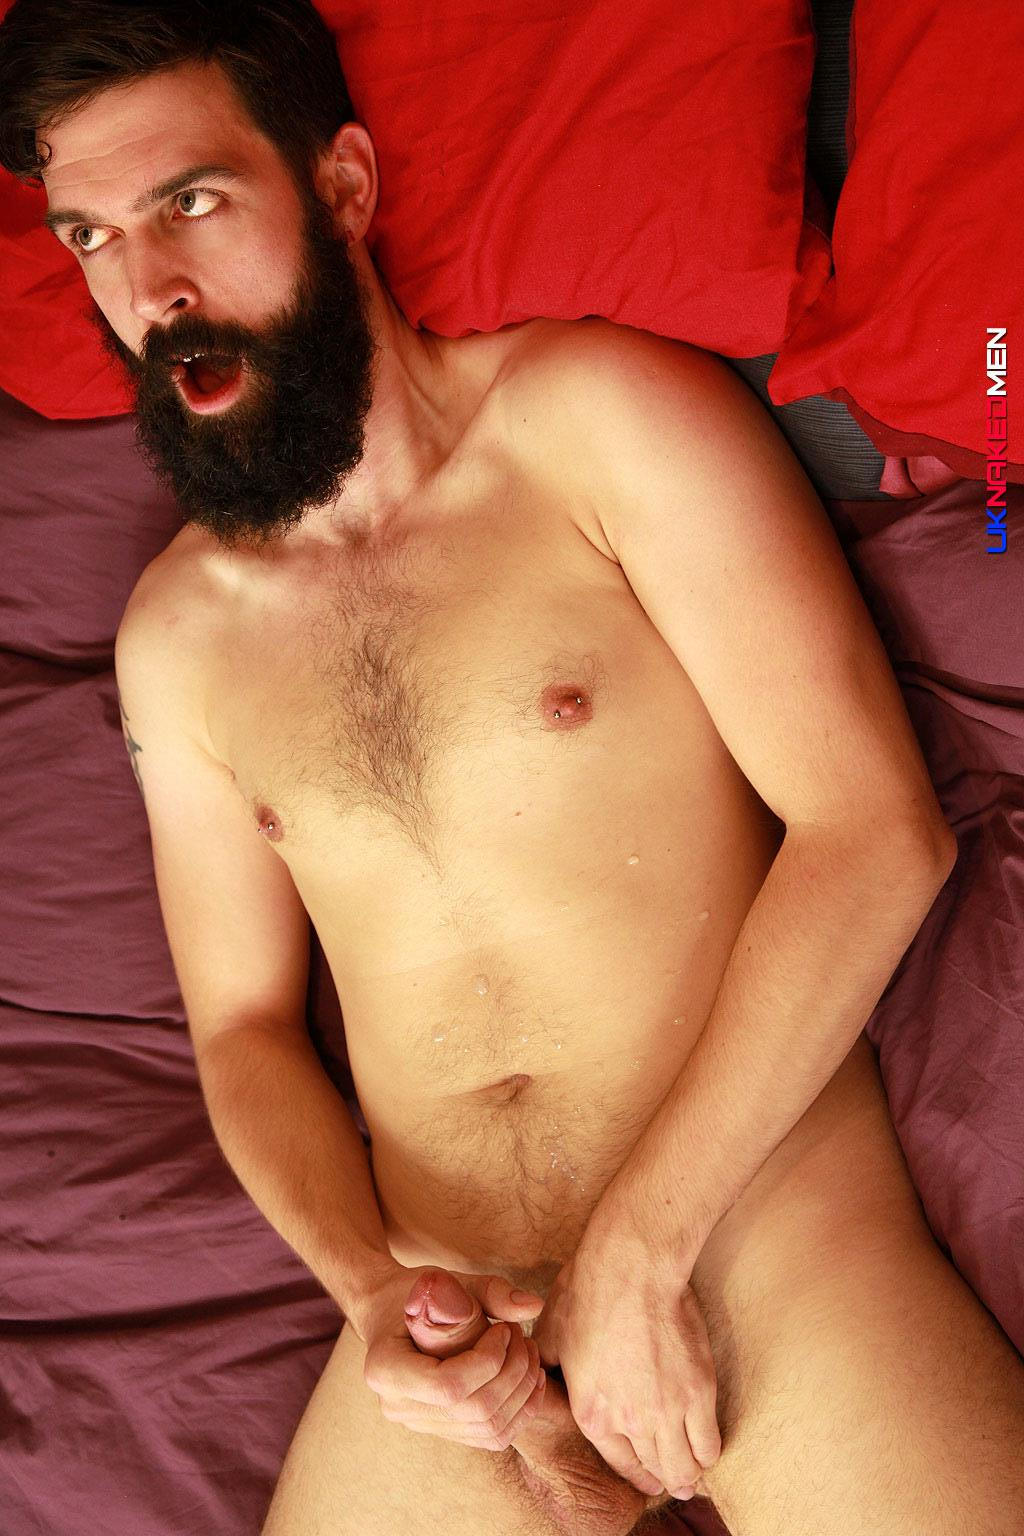 UK Naked Men Tom Long Bearded Guy With A Big Uncut Cock Jerk Off Amateur Gay Porn 13